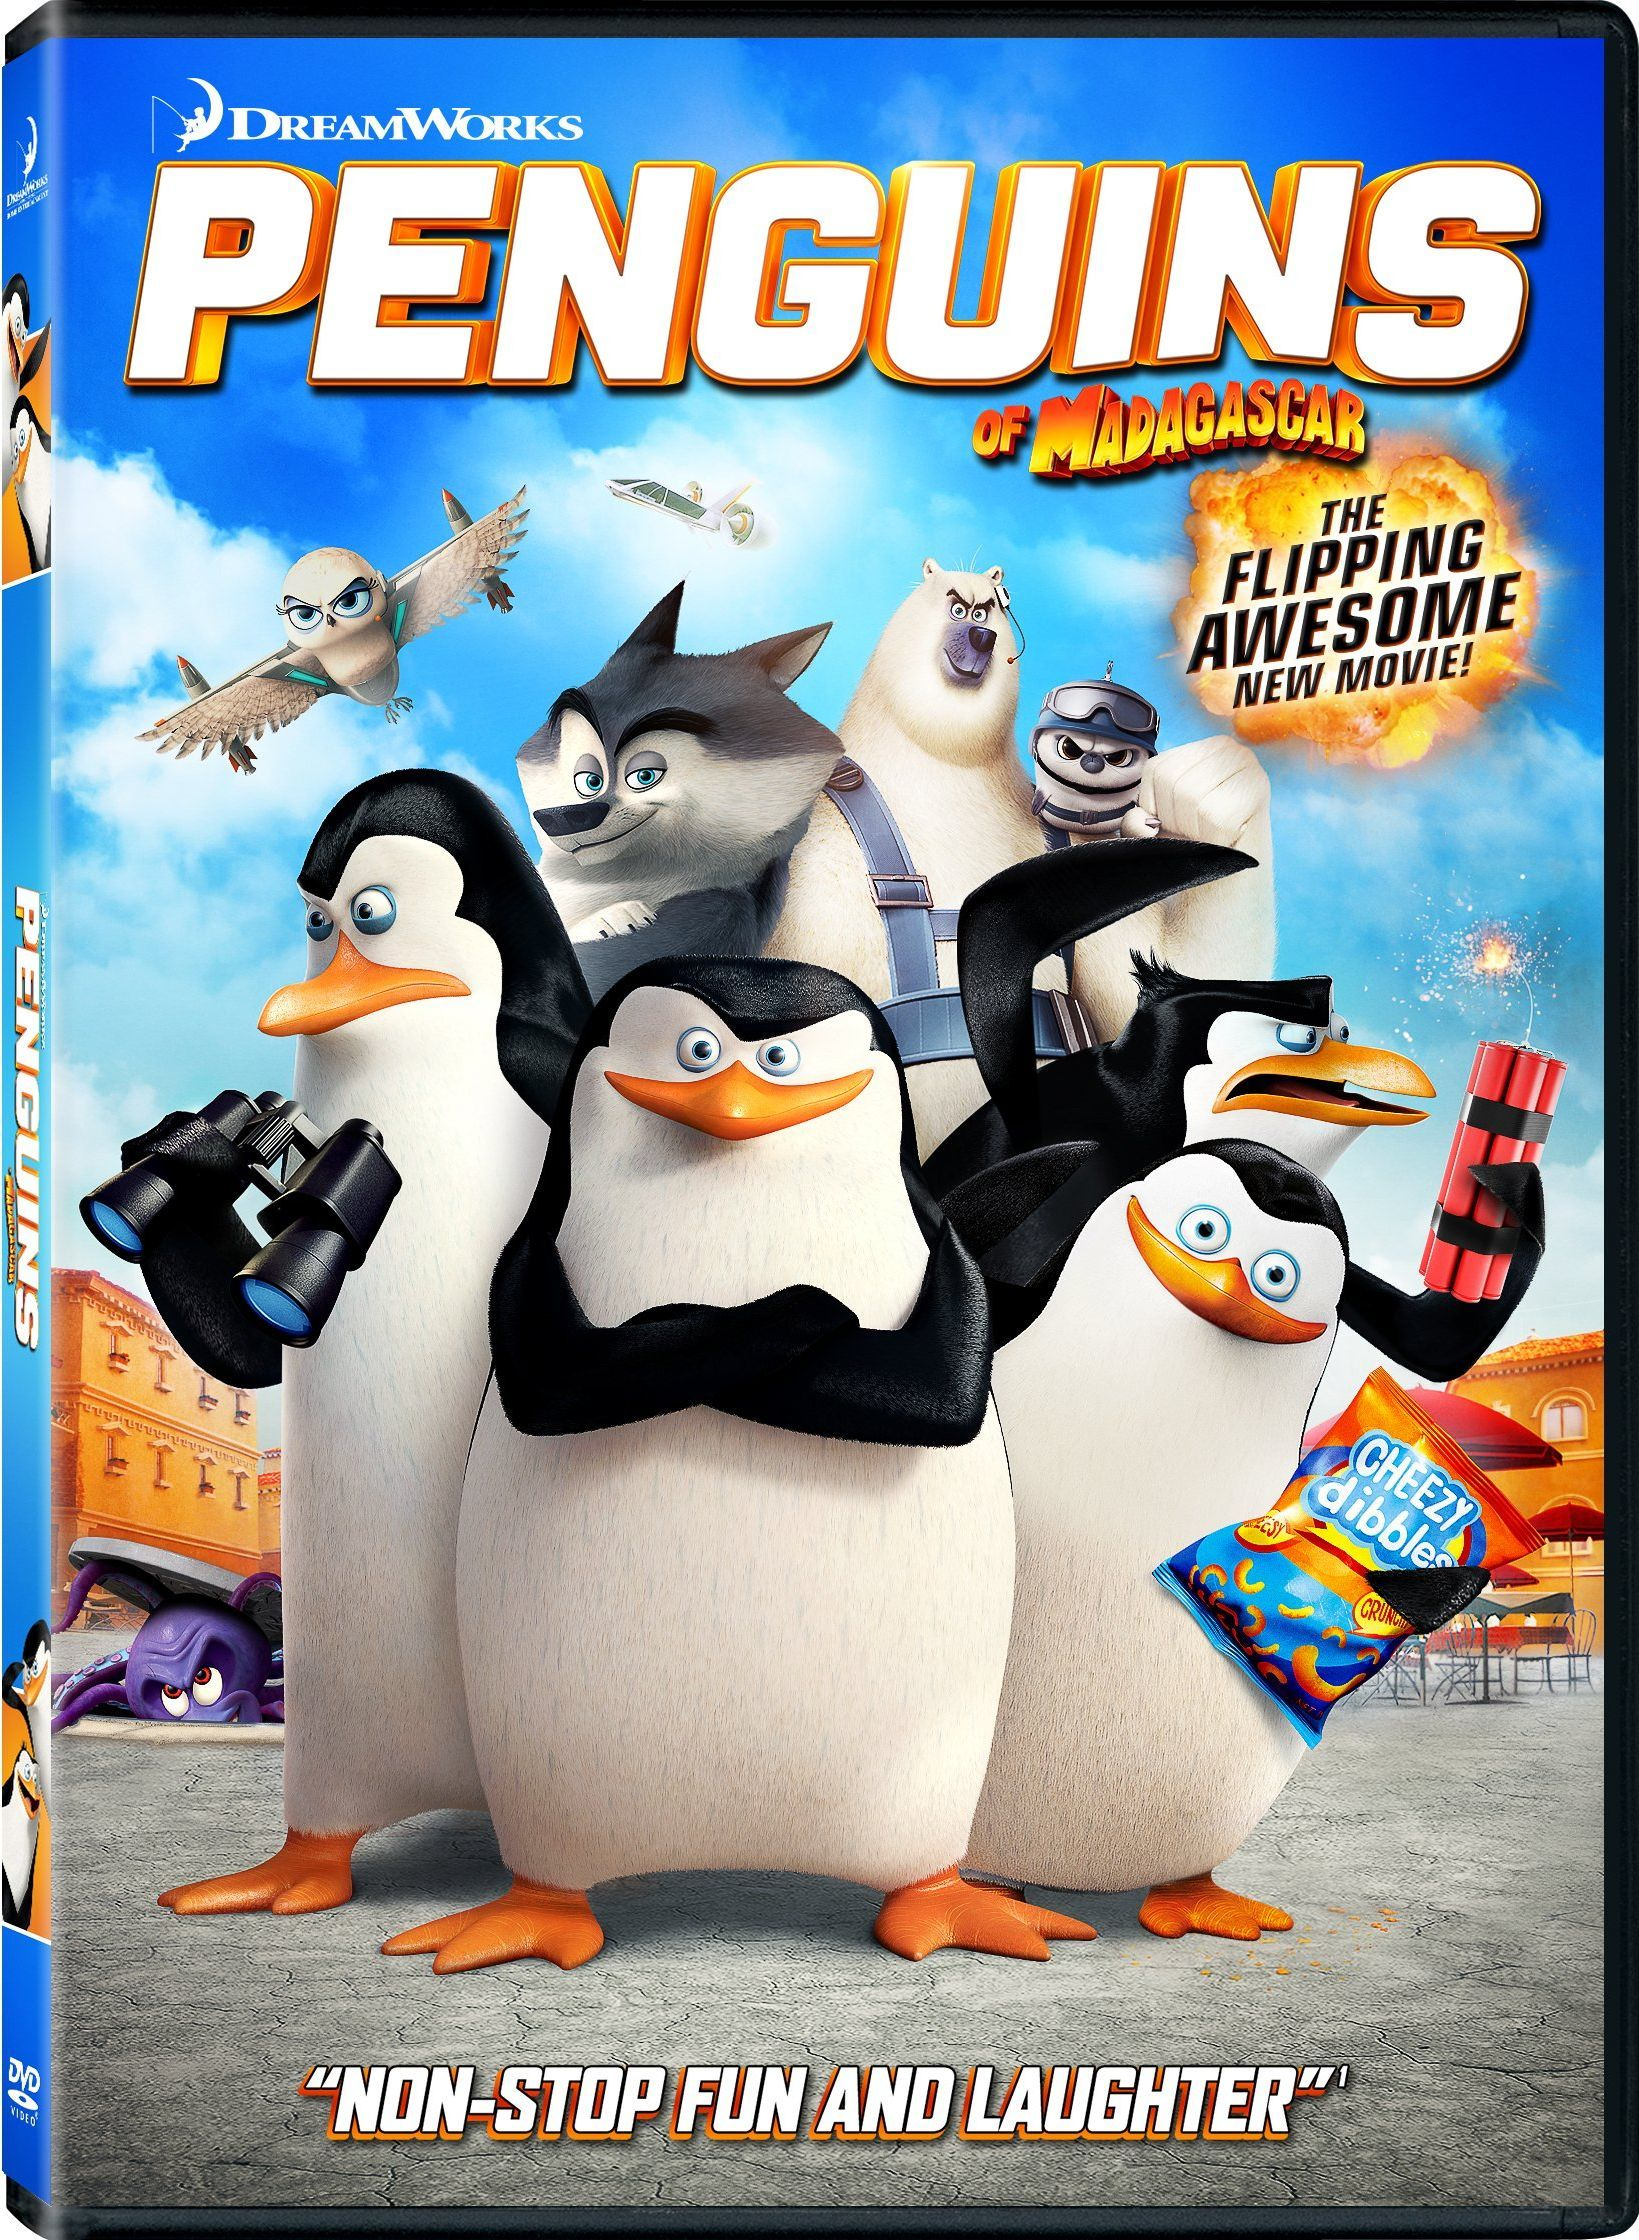 cfd5a3d35142aa99c7dd_penguins-of-madagascar-dvd-cover-02.jpg